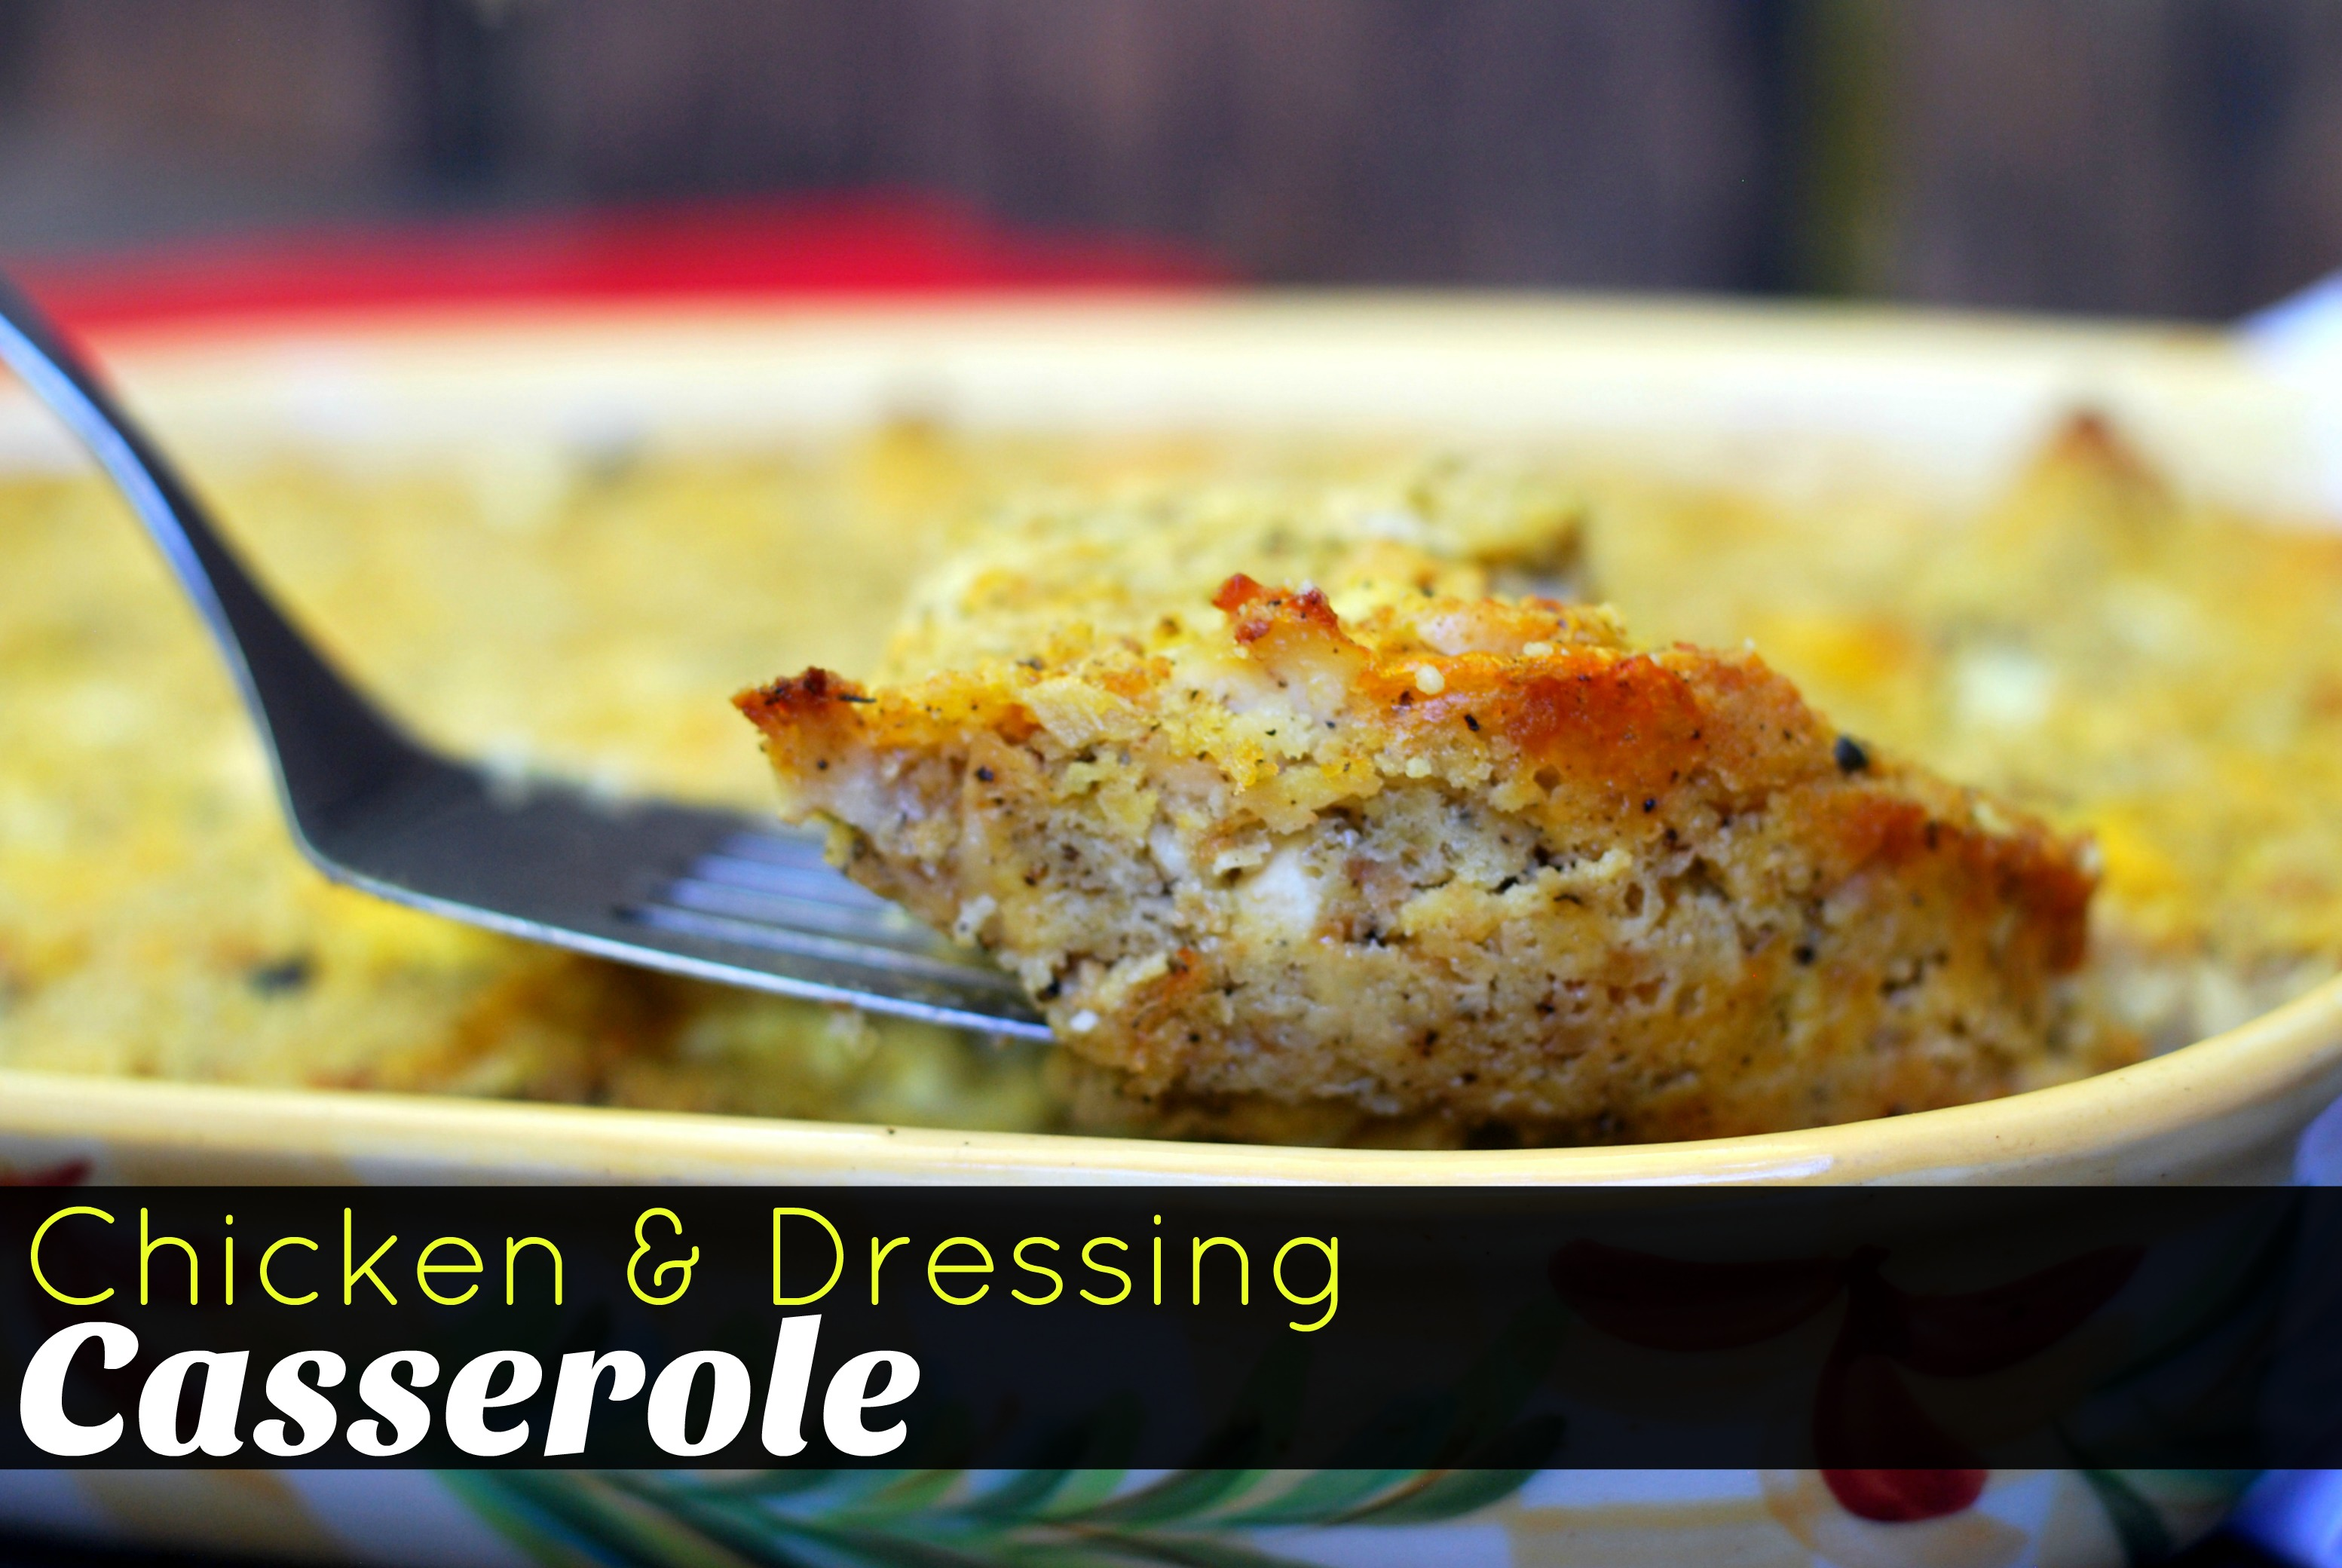 Chicken & Dressing Casserole